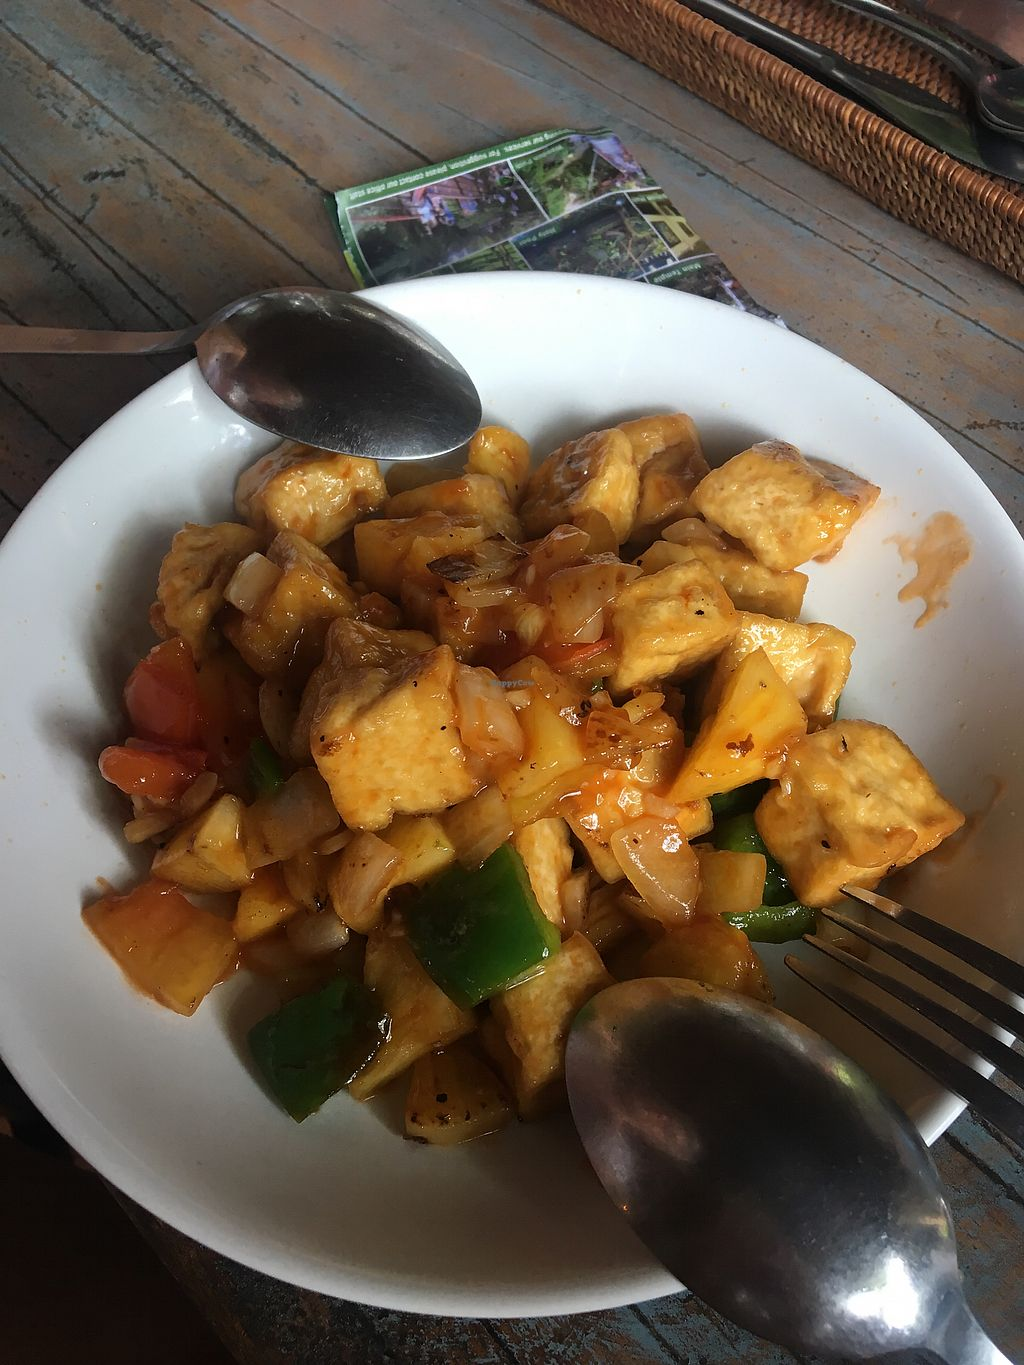 """Photo of Veggie Karma  by <a href=""""/members/profile/EmmaZ"""">EmmaZ</a> <br/>Sweet and sour tofu so so yum <br/> April 7, 2018  - <a href='/contact/abuse/image/82067/381889'>Report</a>"""